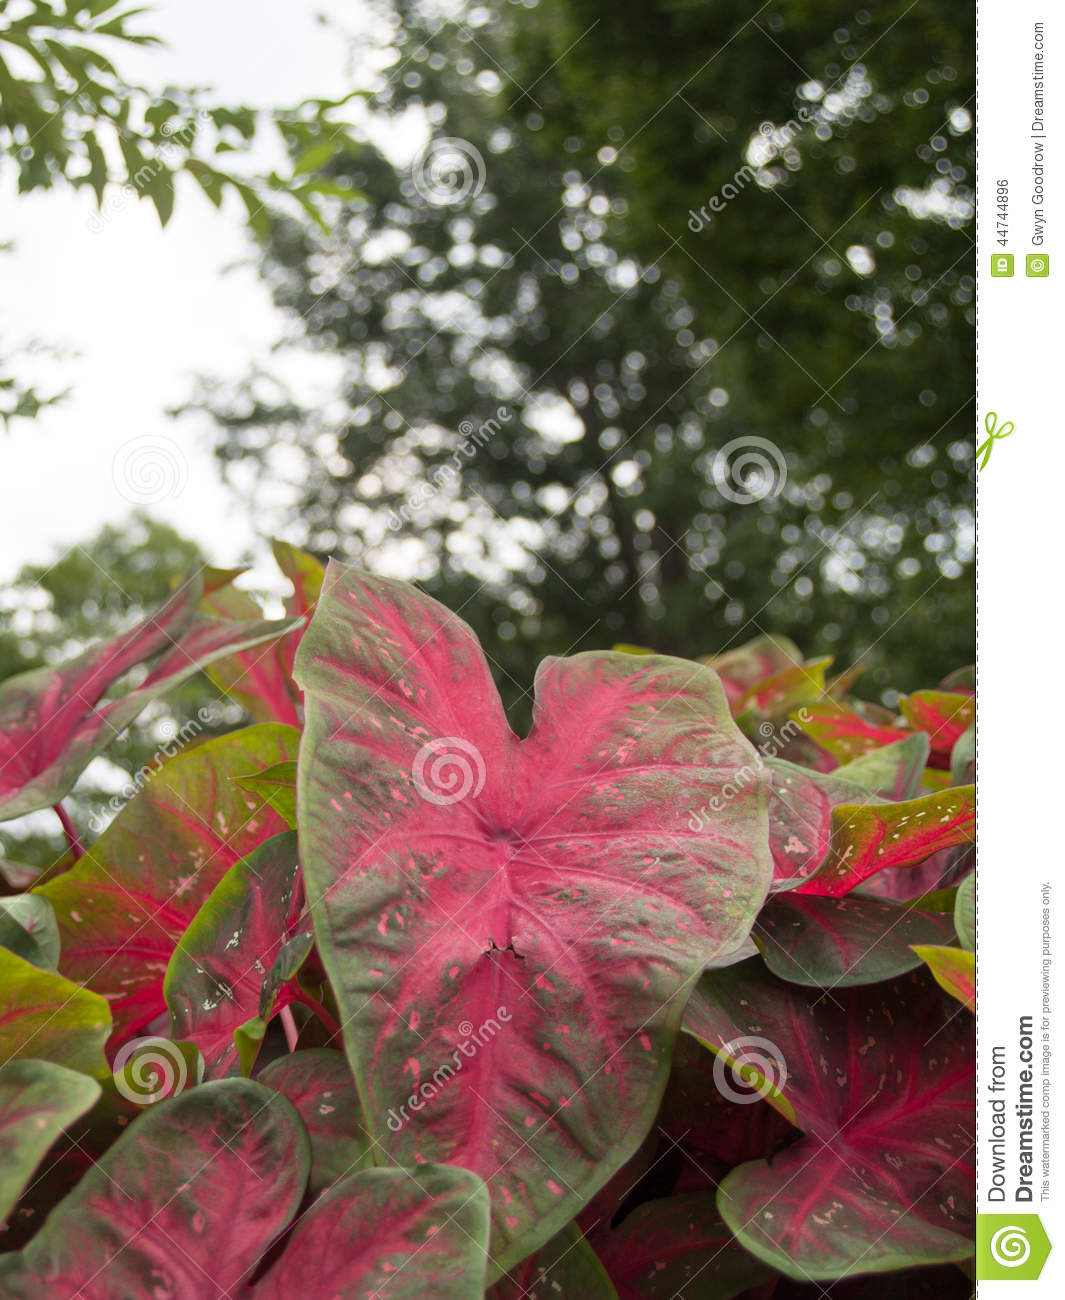 Elephant Ear Plant Stock Photo Image Of Colocasia Green 44744896